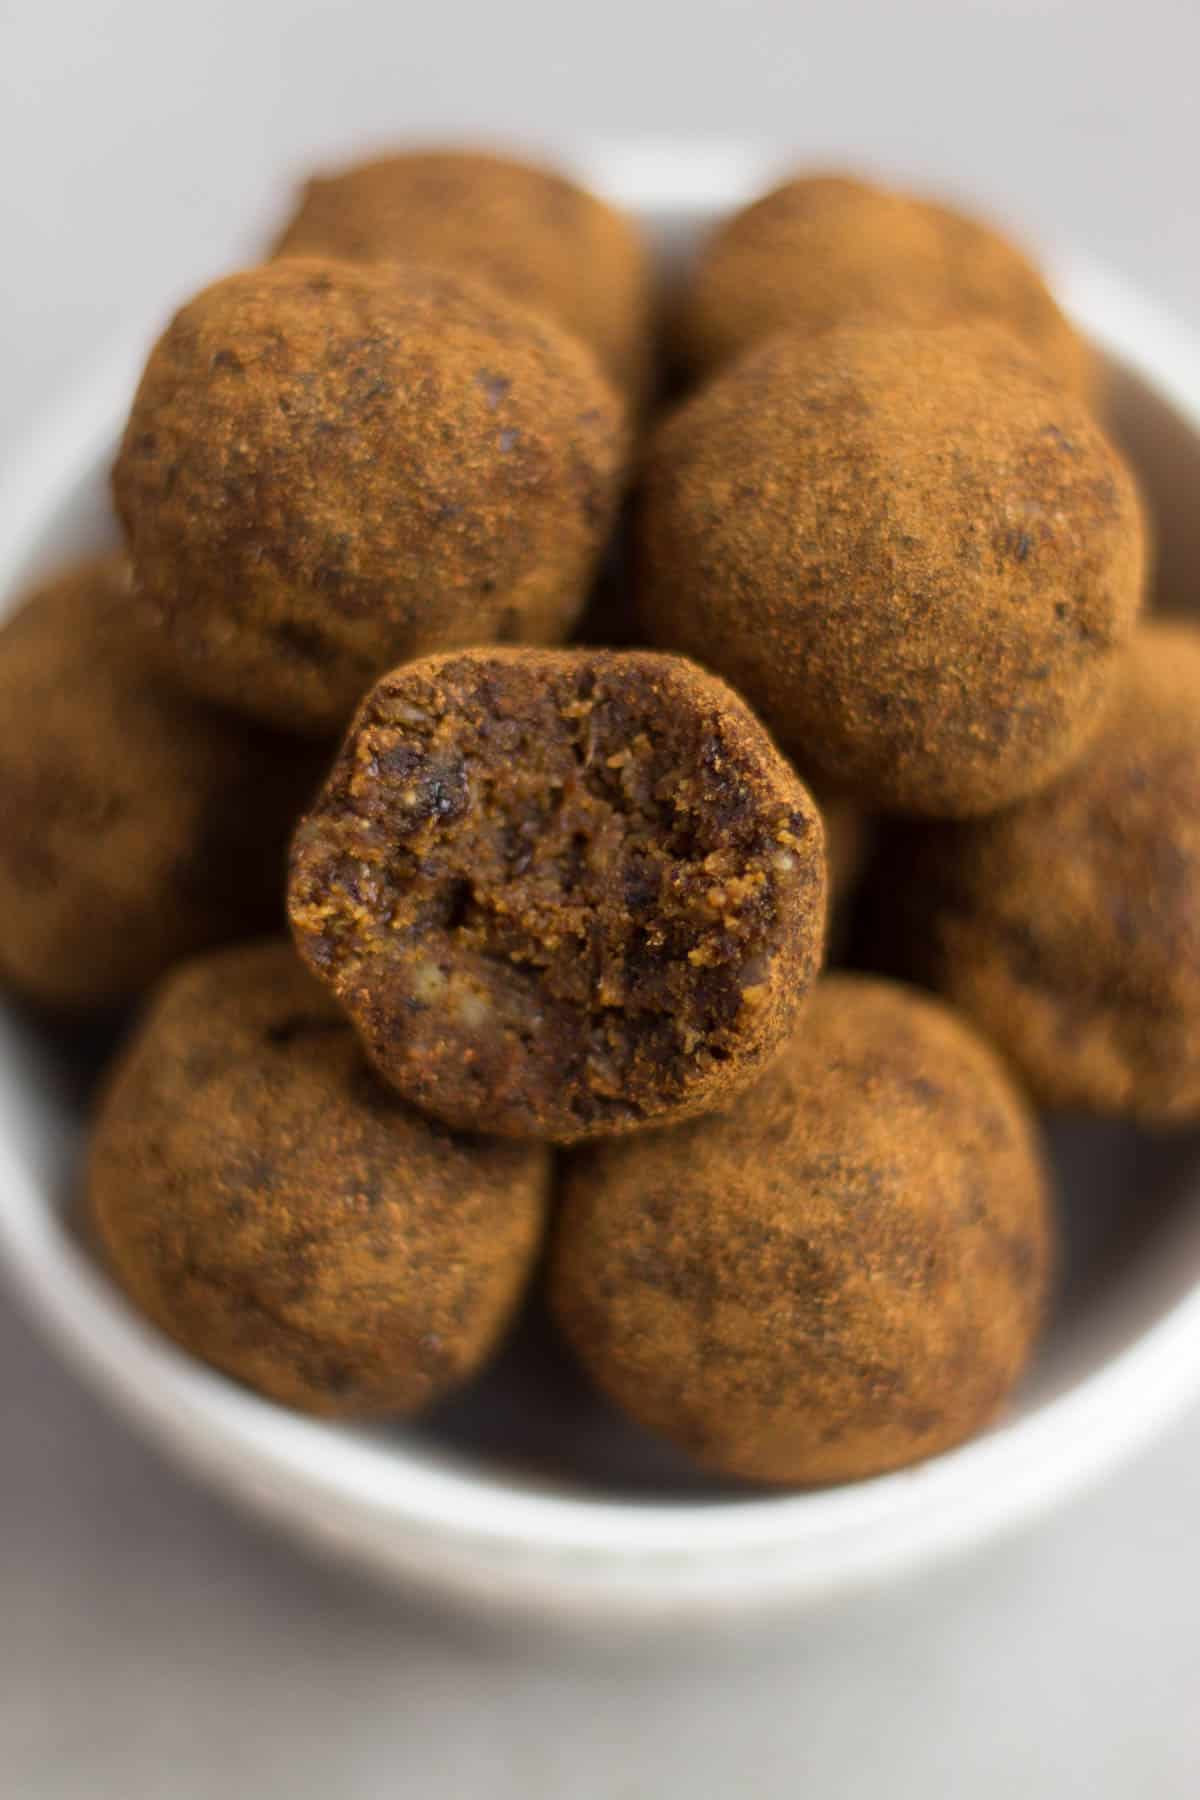 Classic fall flavors make their way into these Pumpkin Cinnamon Raisin Balls for the perfect snack or energy ball pick-me-up. Vegan, paleo, and Whole30 approved! - Eat the Gains